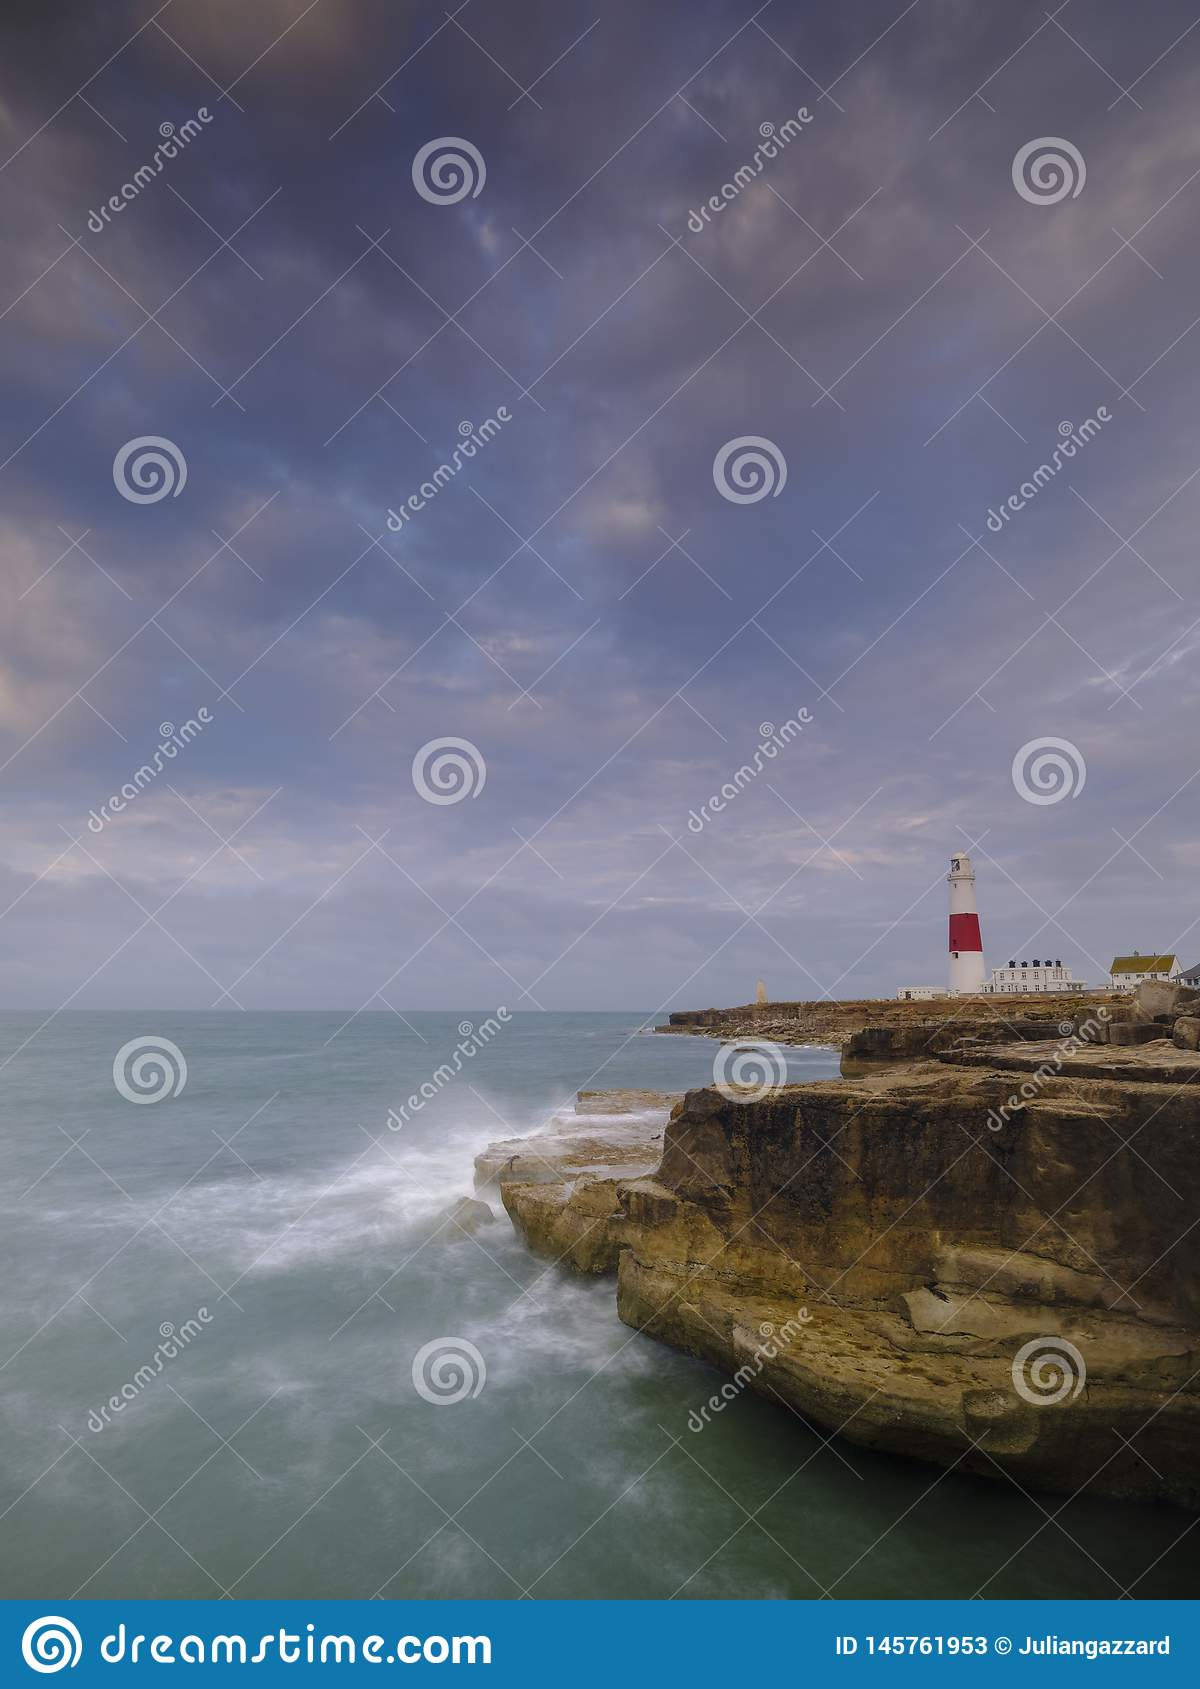 Portland Bill Light, Dorset, UK